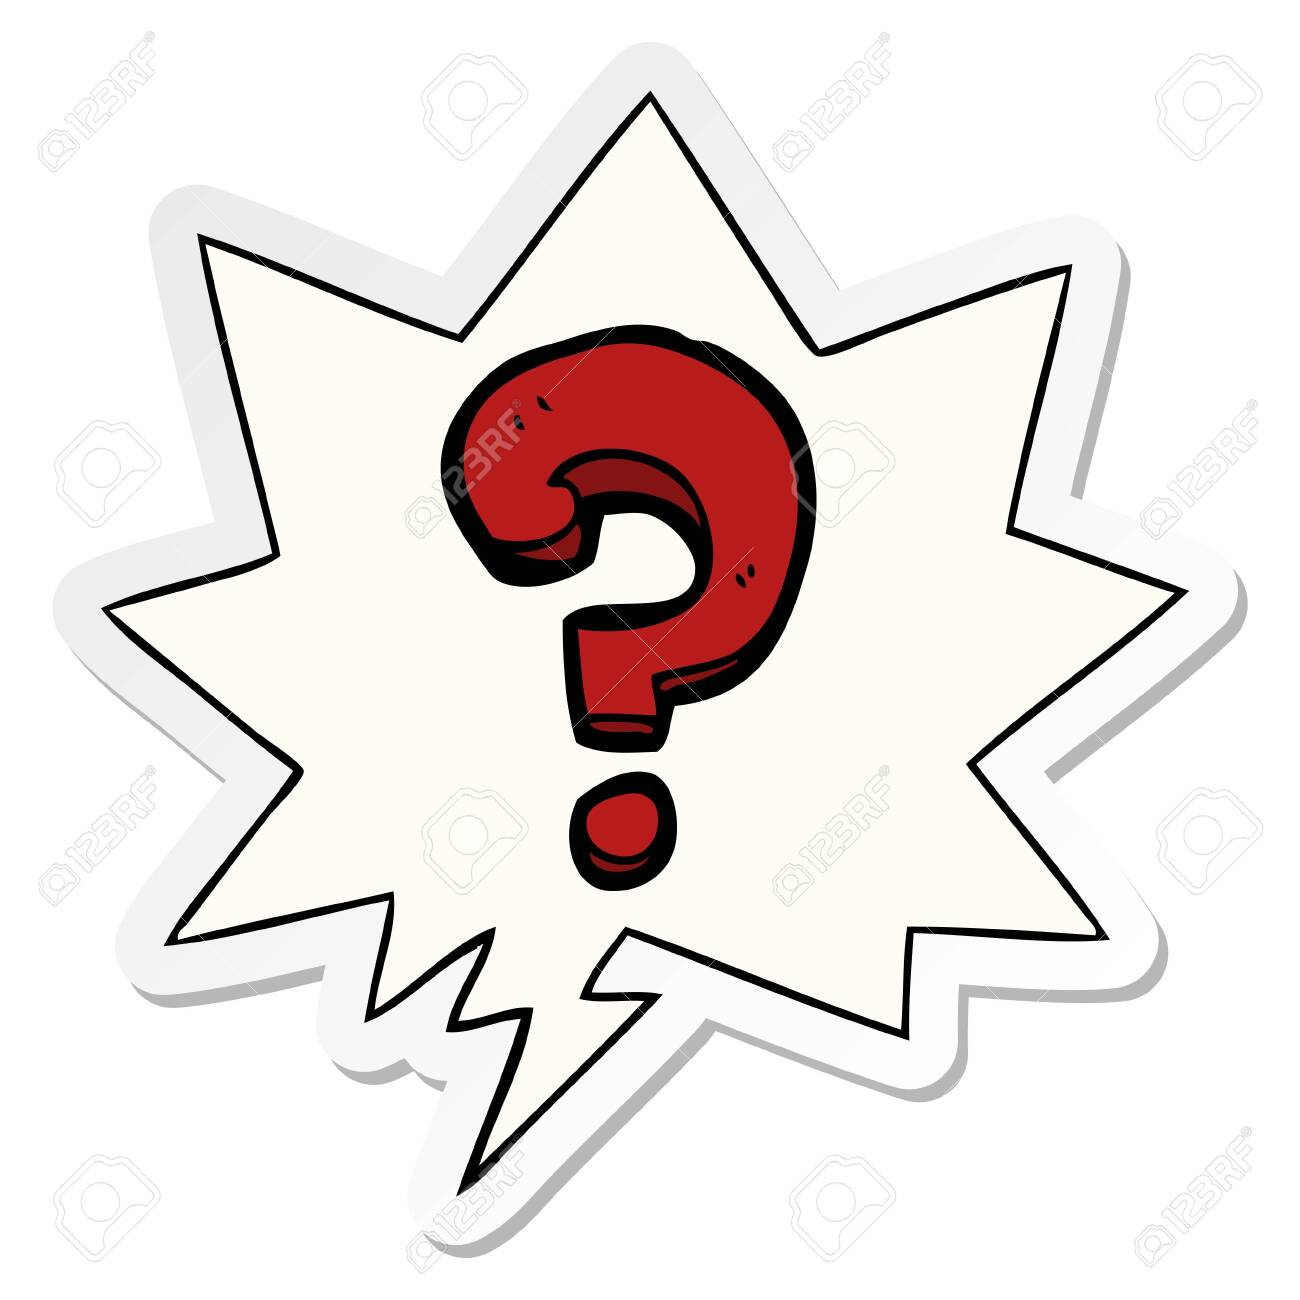 Cartoon Question Mark With Speech Bubble Sticker Royalty Free Cliparts,  Vectors, And Stock Illustration. Image 128593573.